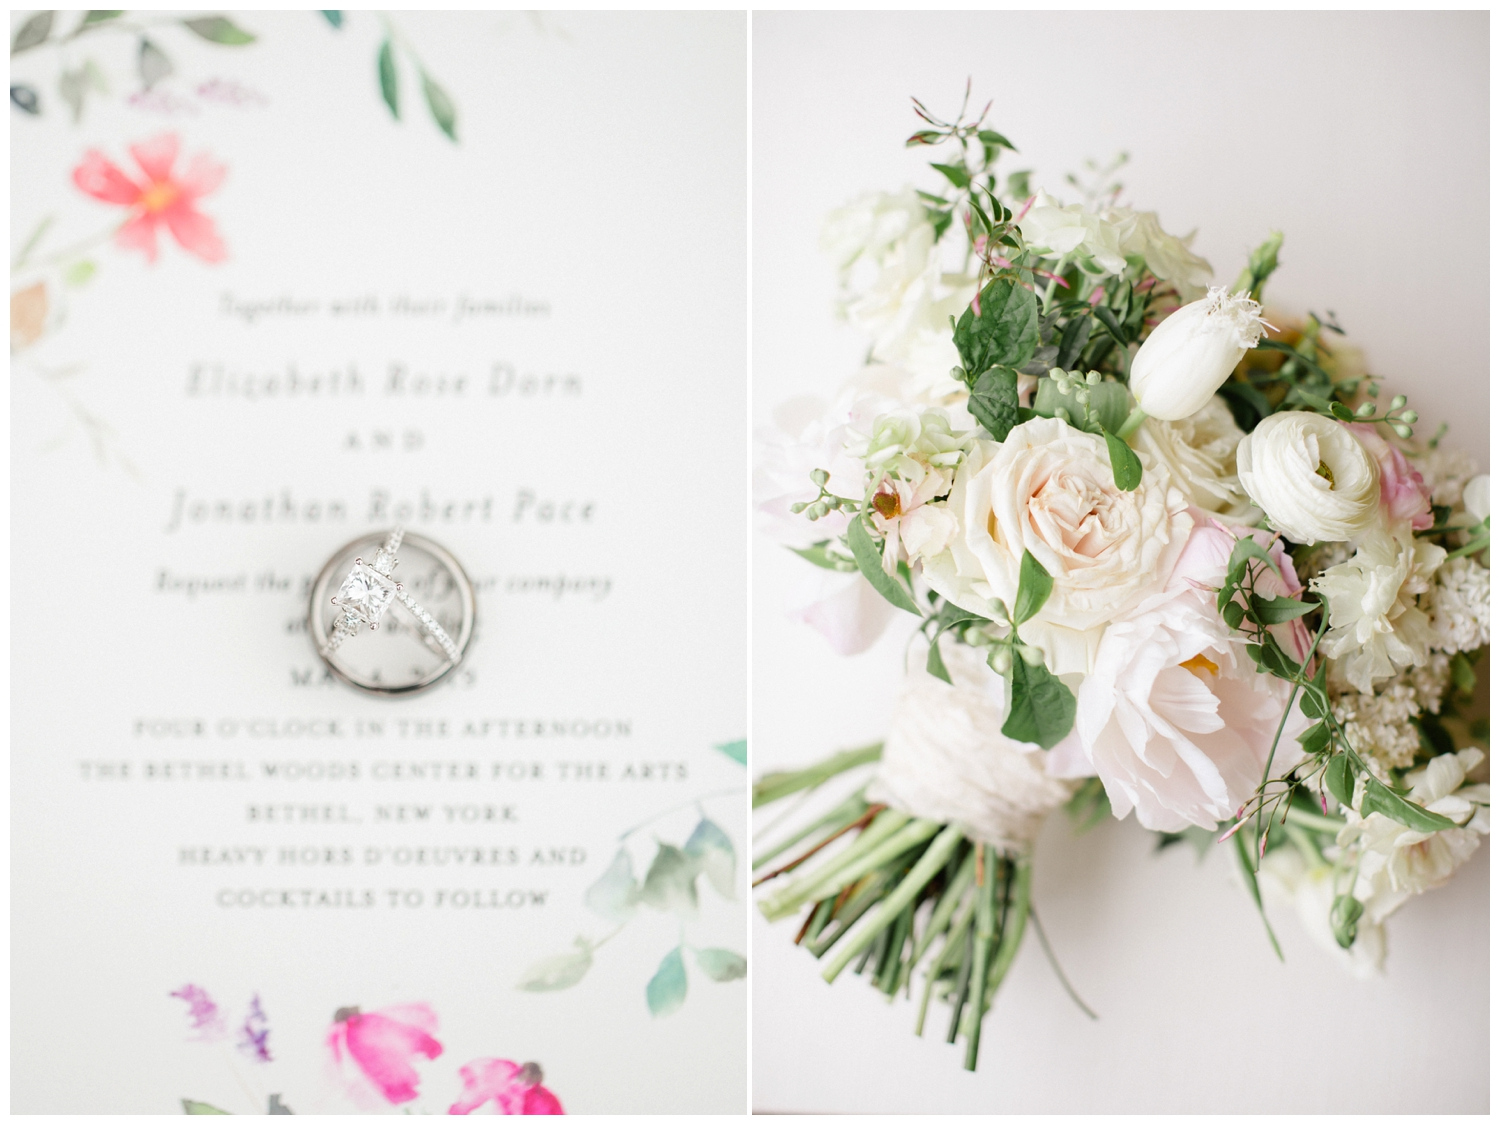 Rustic Wedding Chic Submission_Jordan DeNike_0075.jpg